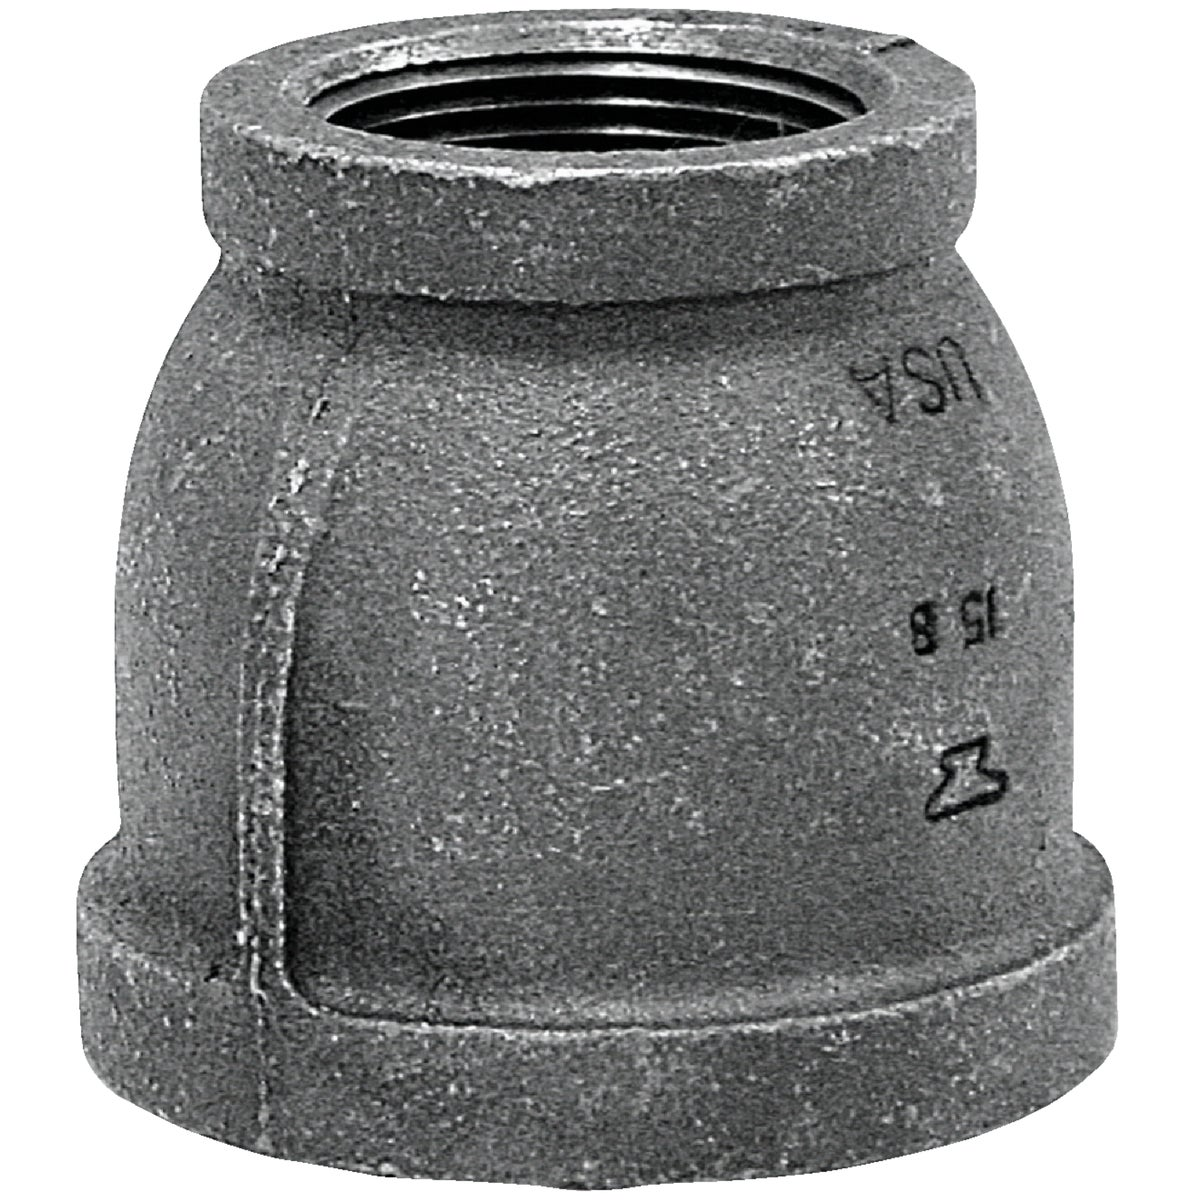 2X1-1/2 BLK COUPLING - 8700134755 by Anvil International